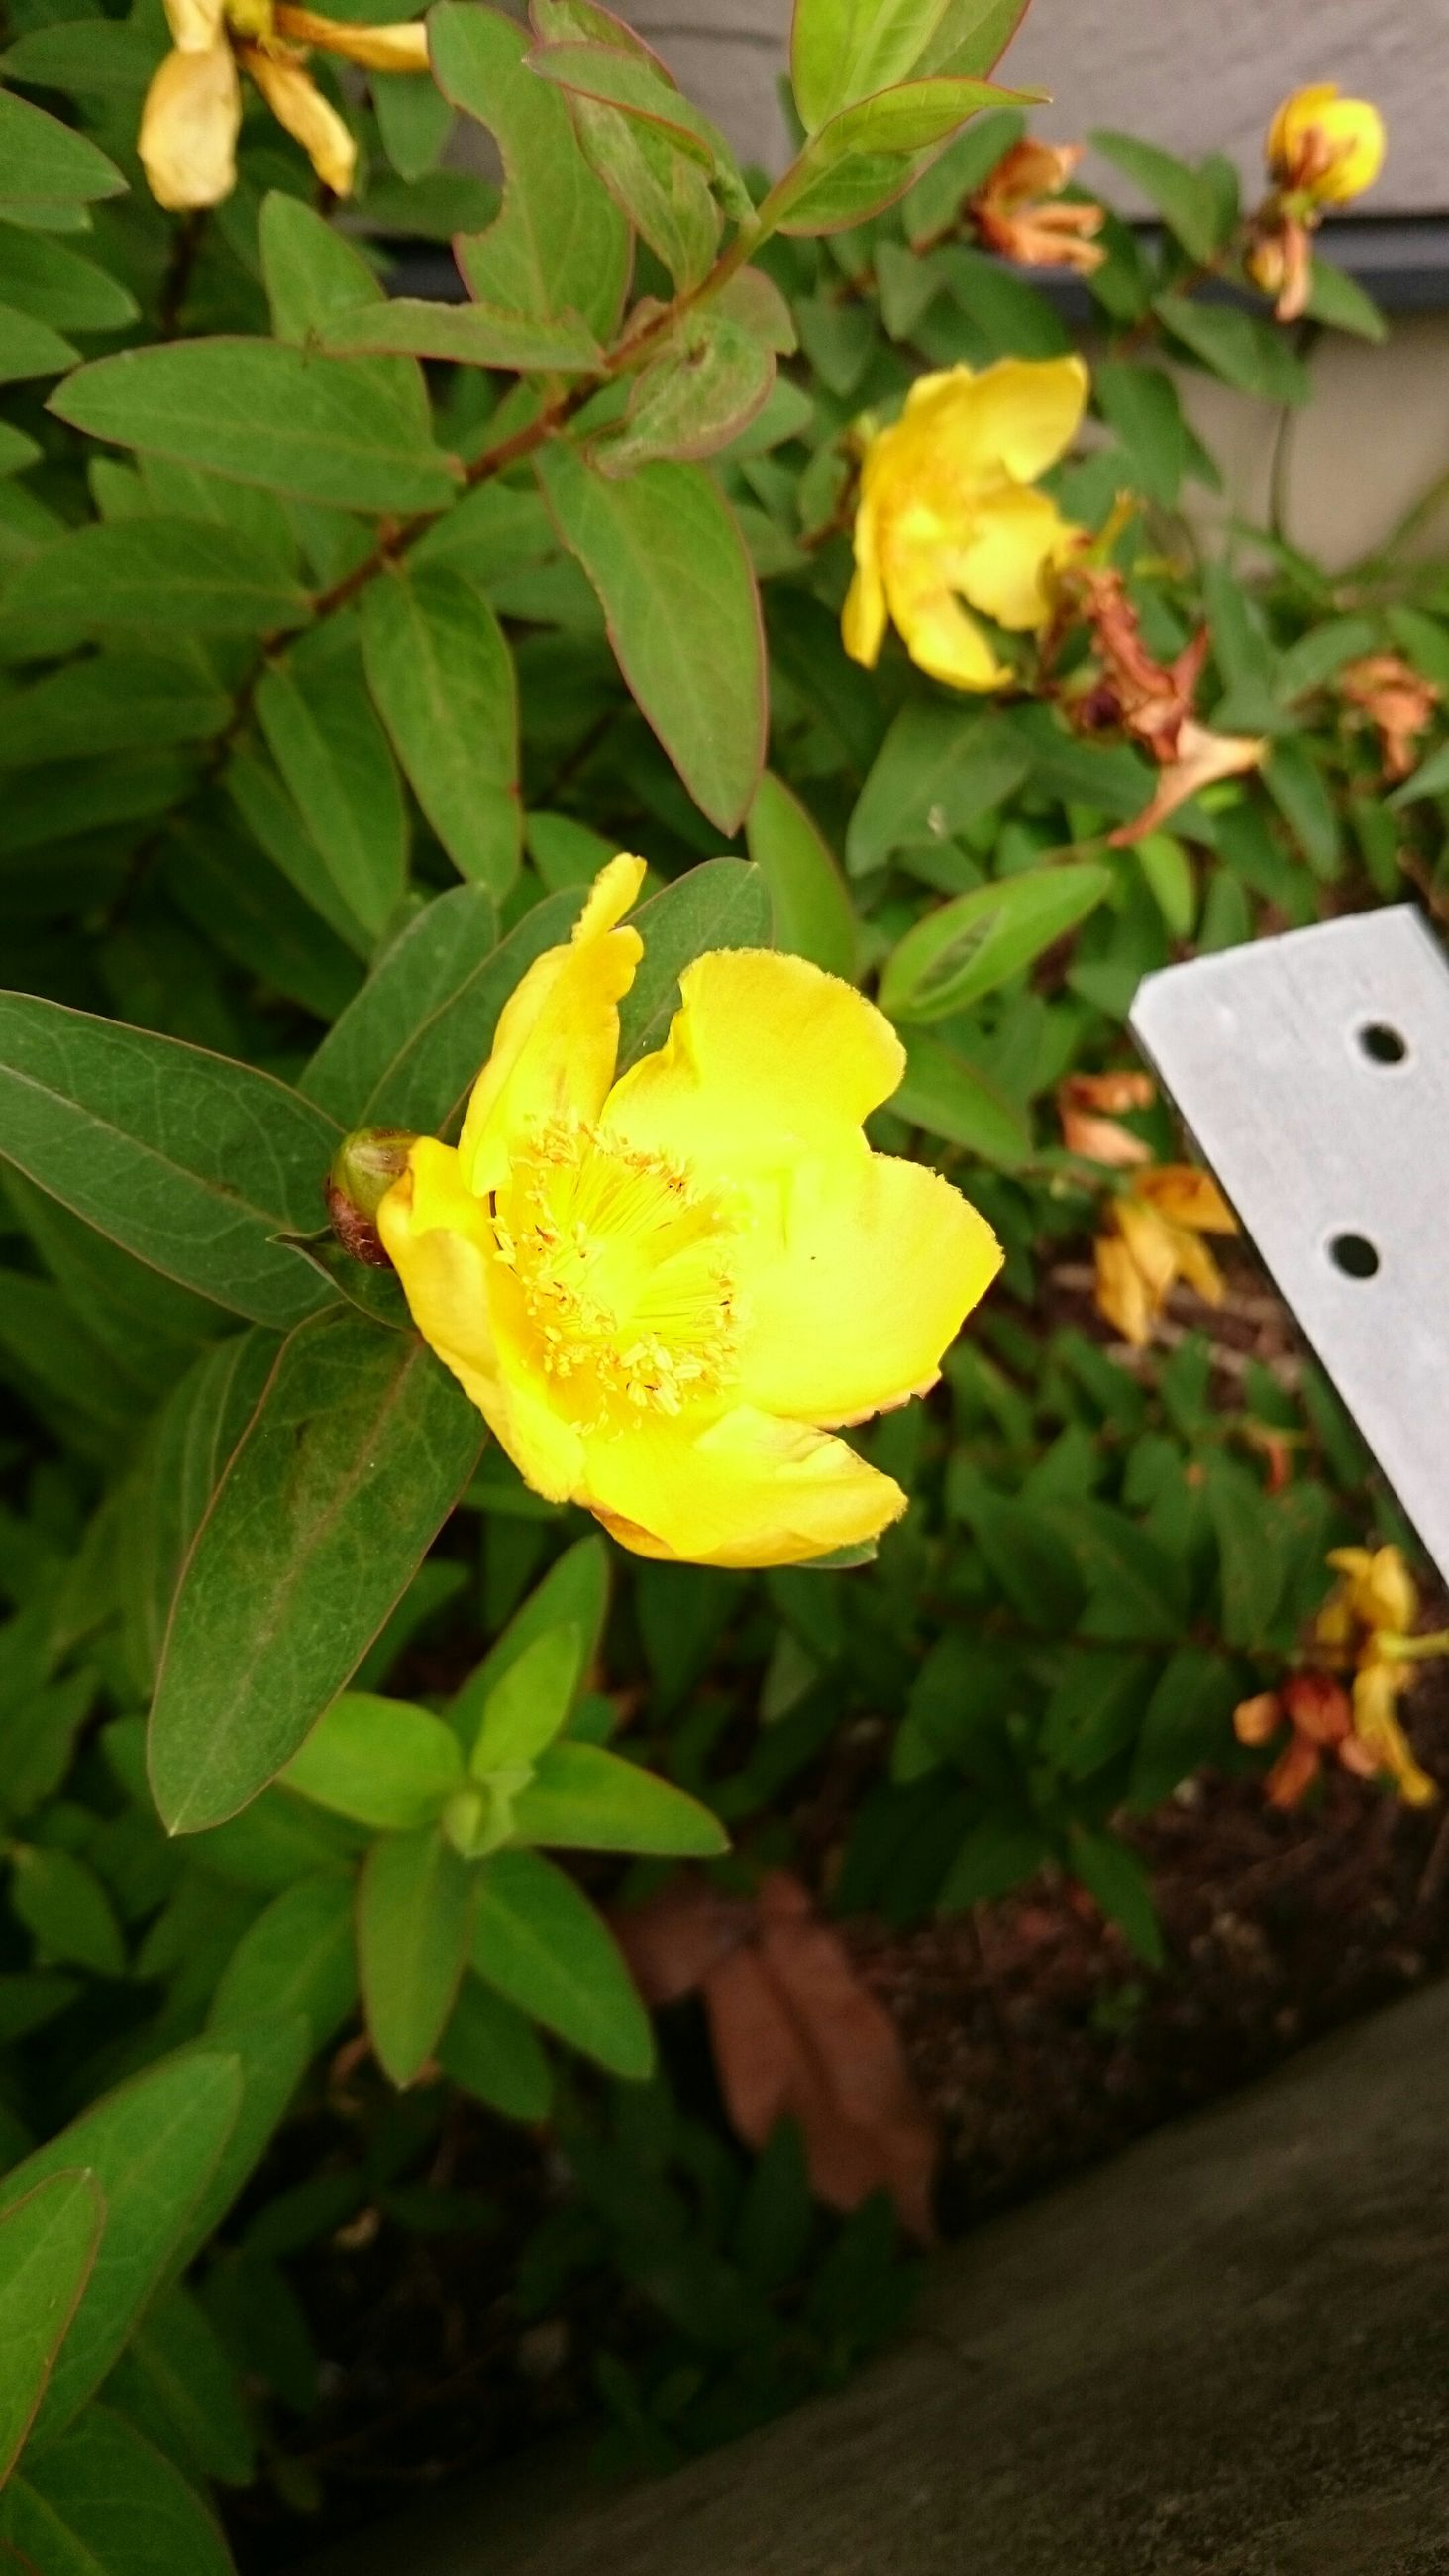 flower, yellow, freshness, petal, leaf, fragility, flower head, close-up, growth, plant, focus on foreground, beauty in nature, nature, green color, high angle view, day, blooming, no people, front or back yard, stem